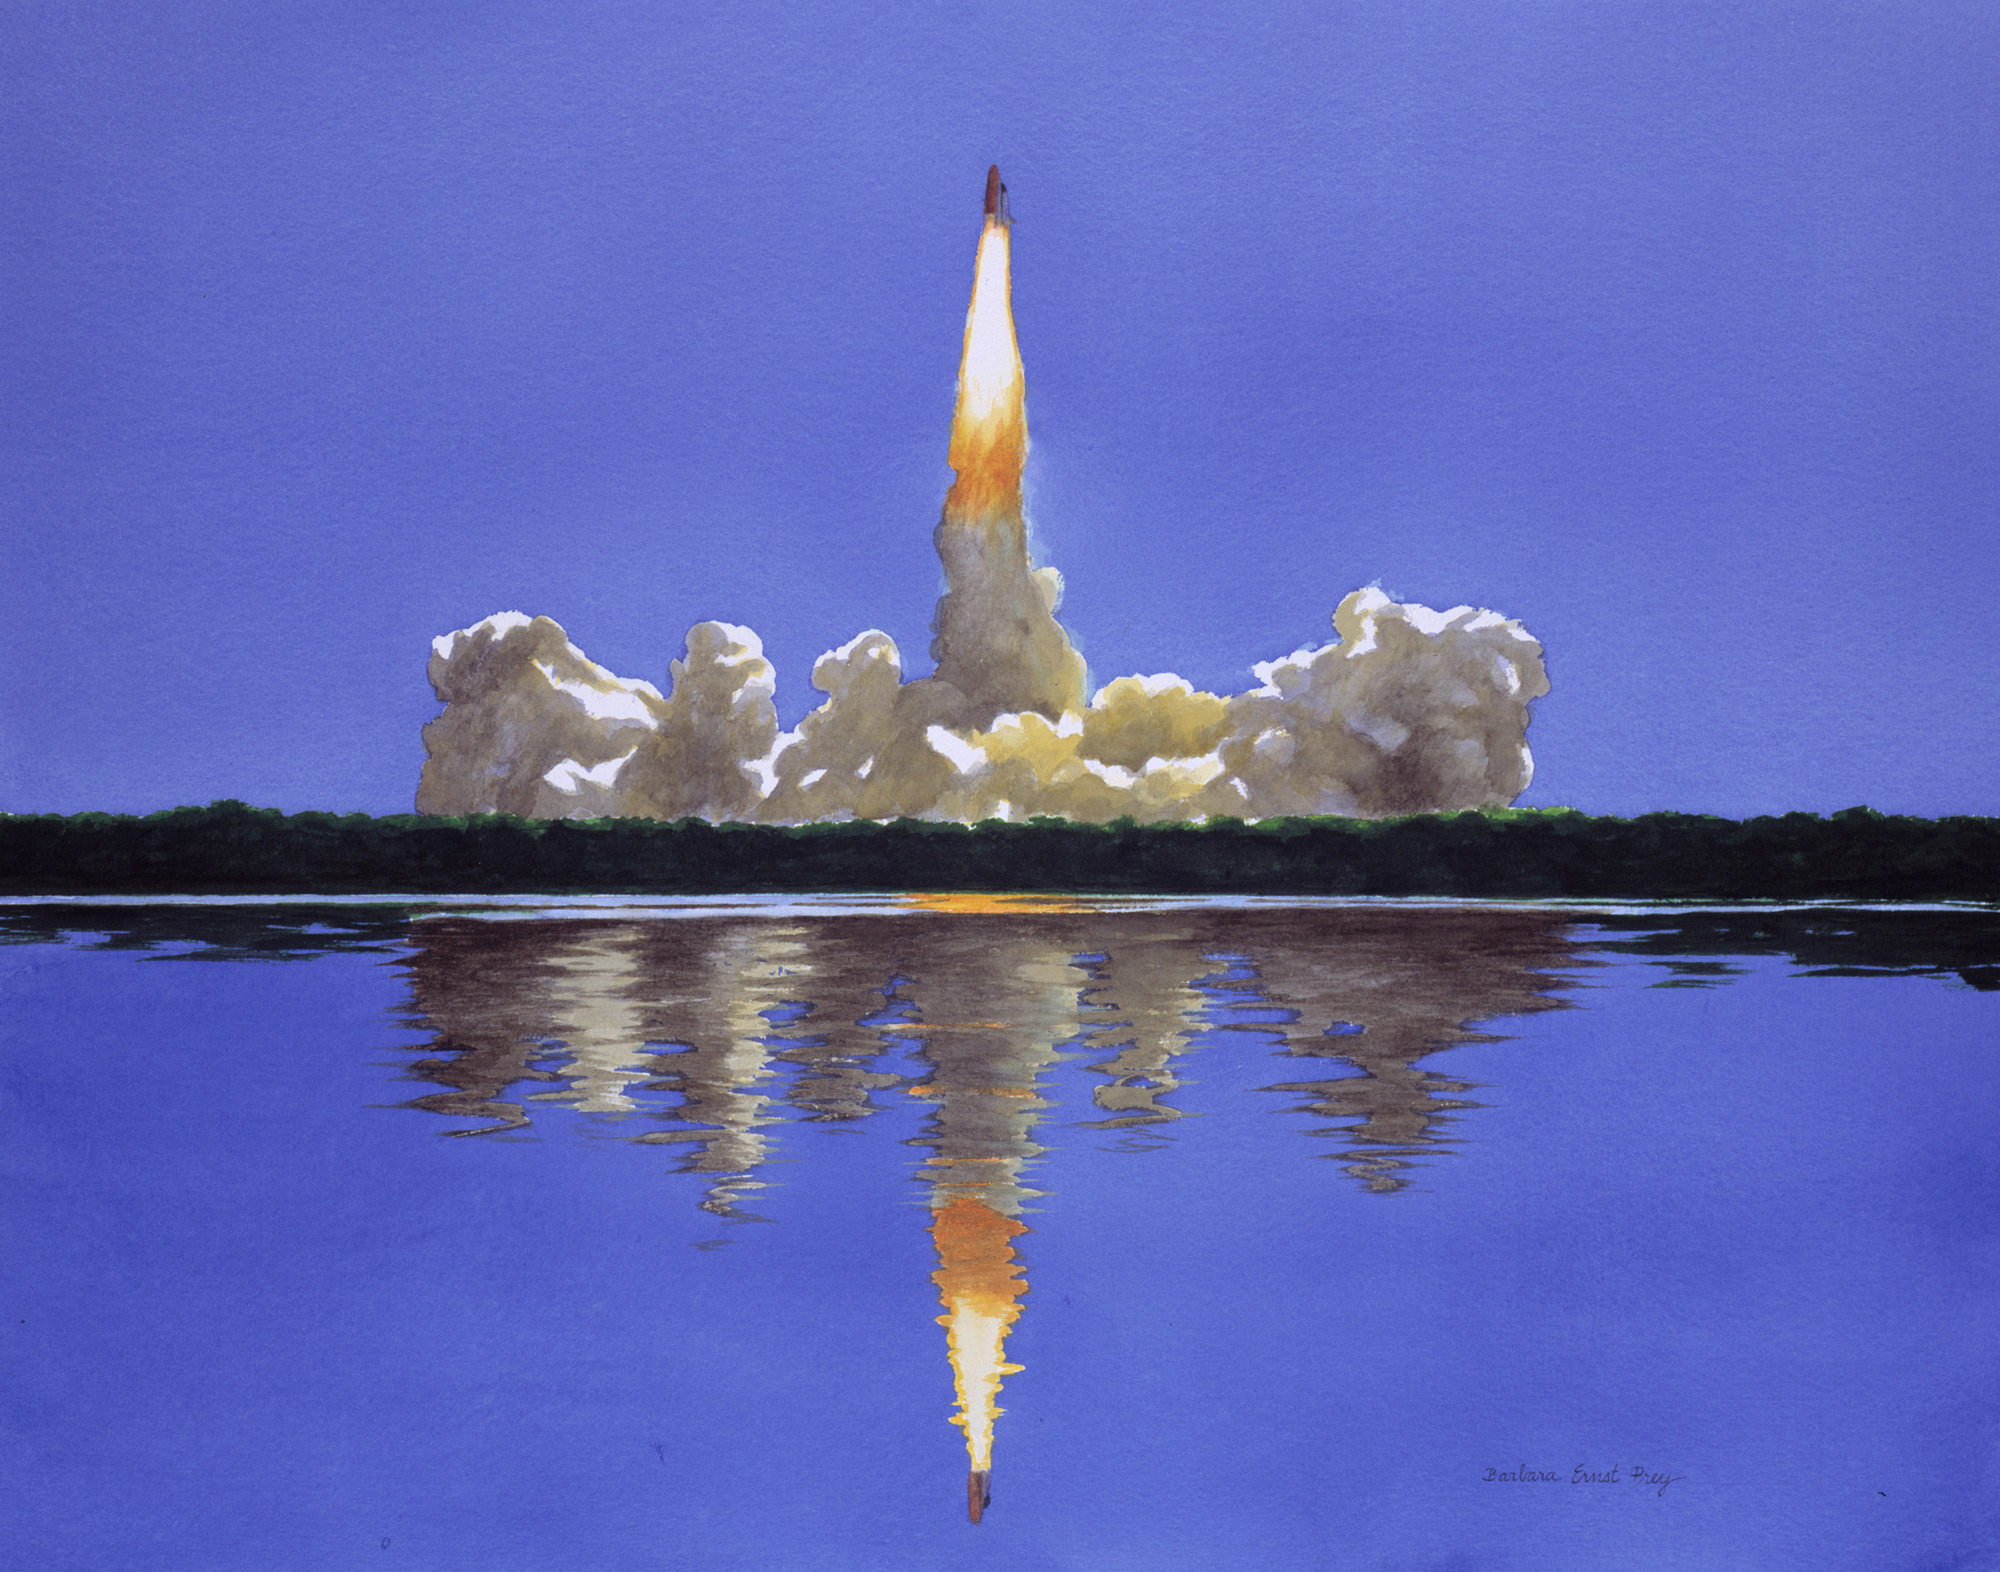 Art of Space: NASA Exhibit Launches Artist as Icon